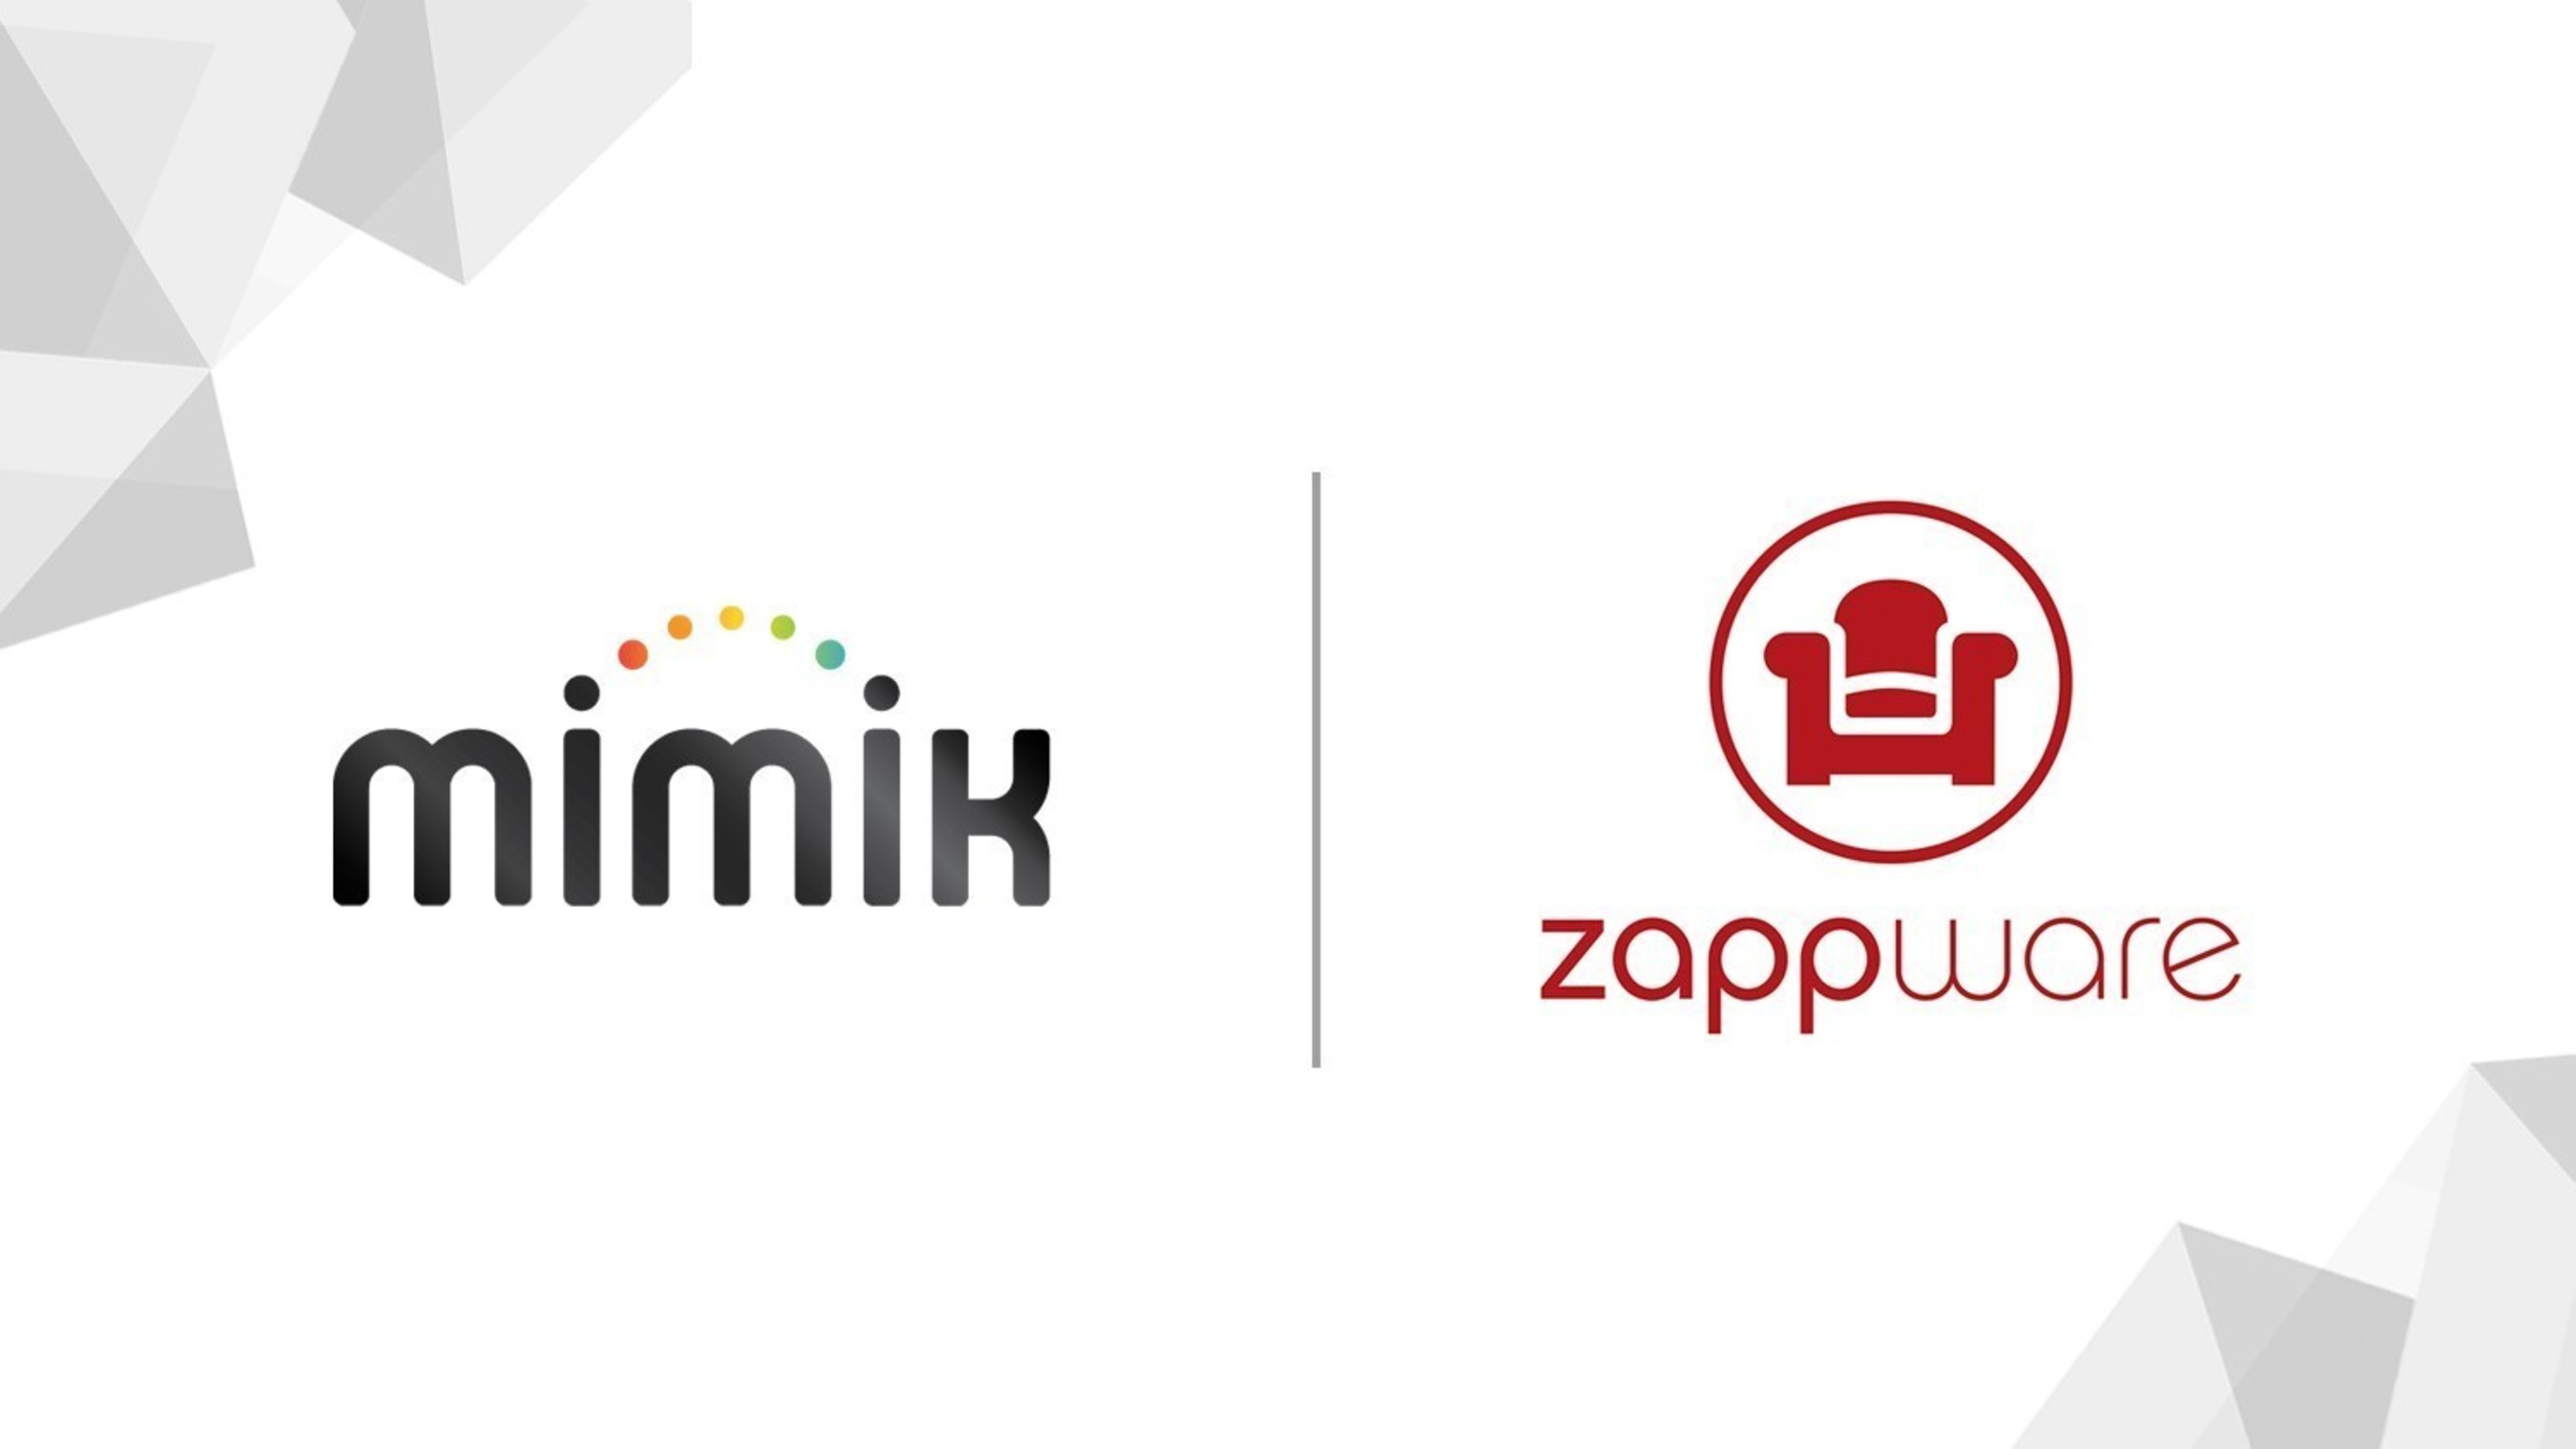 mimik and Zappware Announce Strategic Partnership